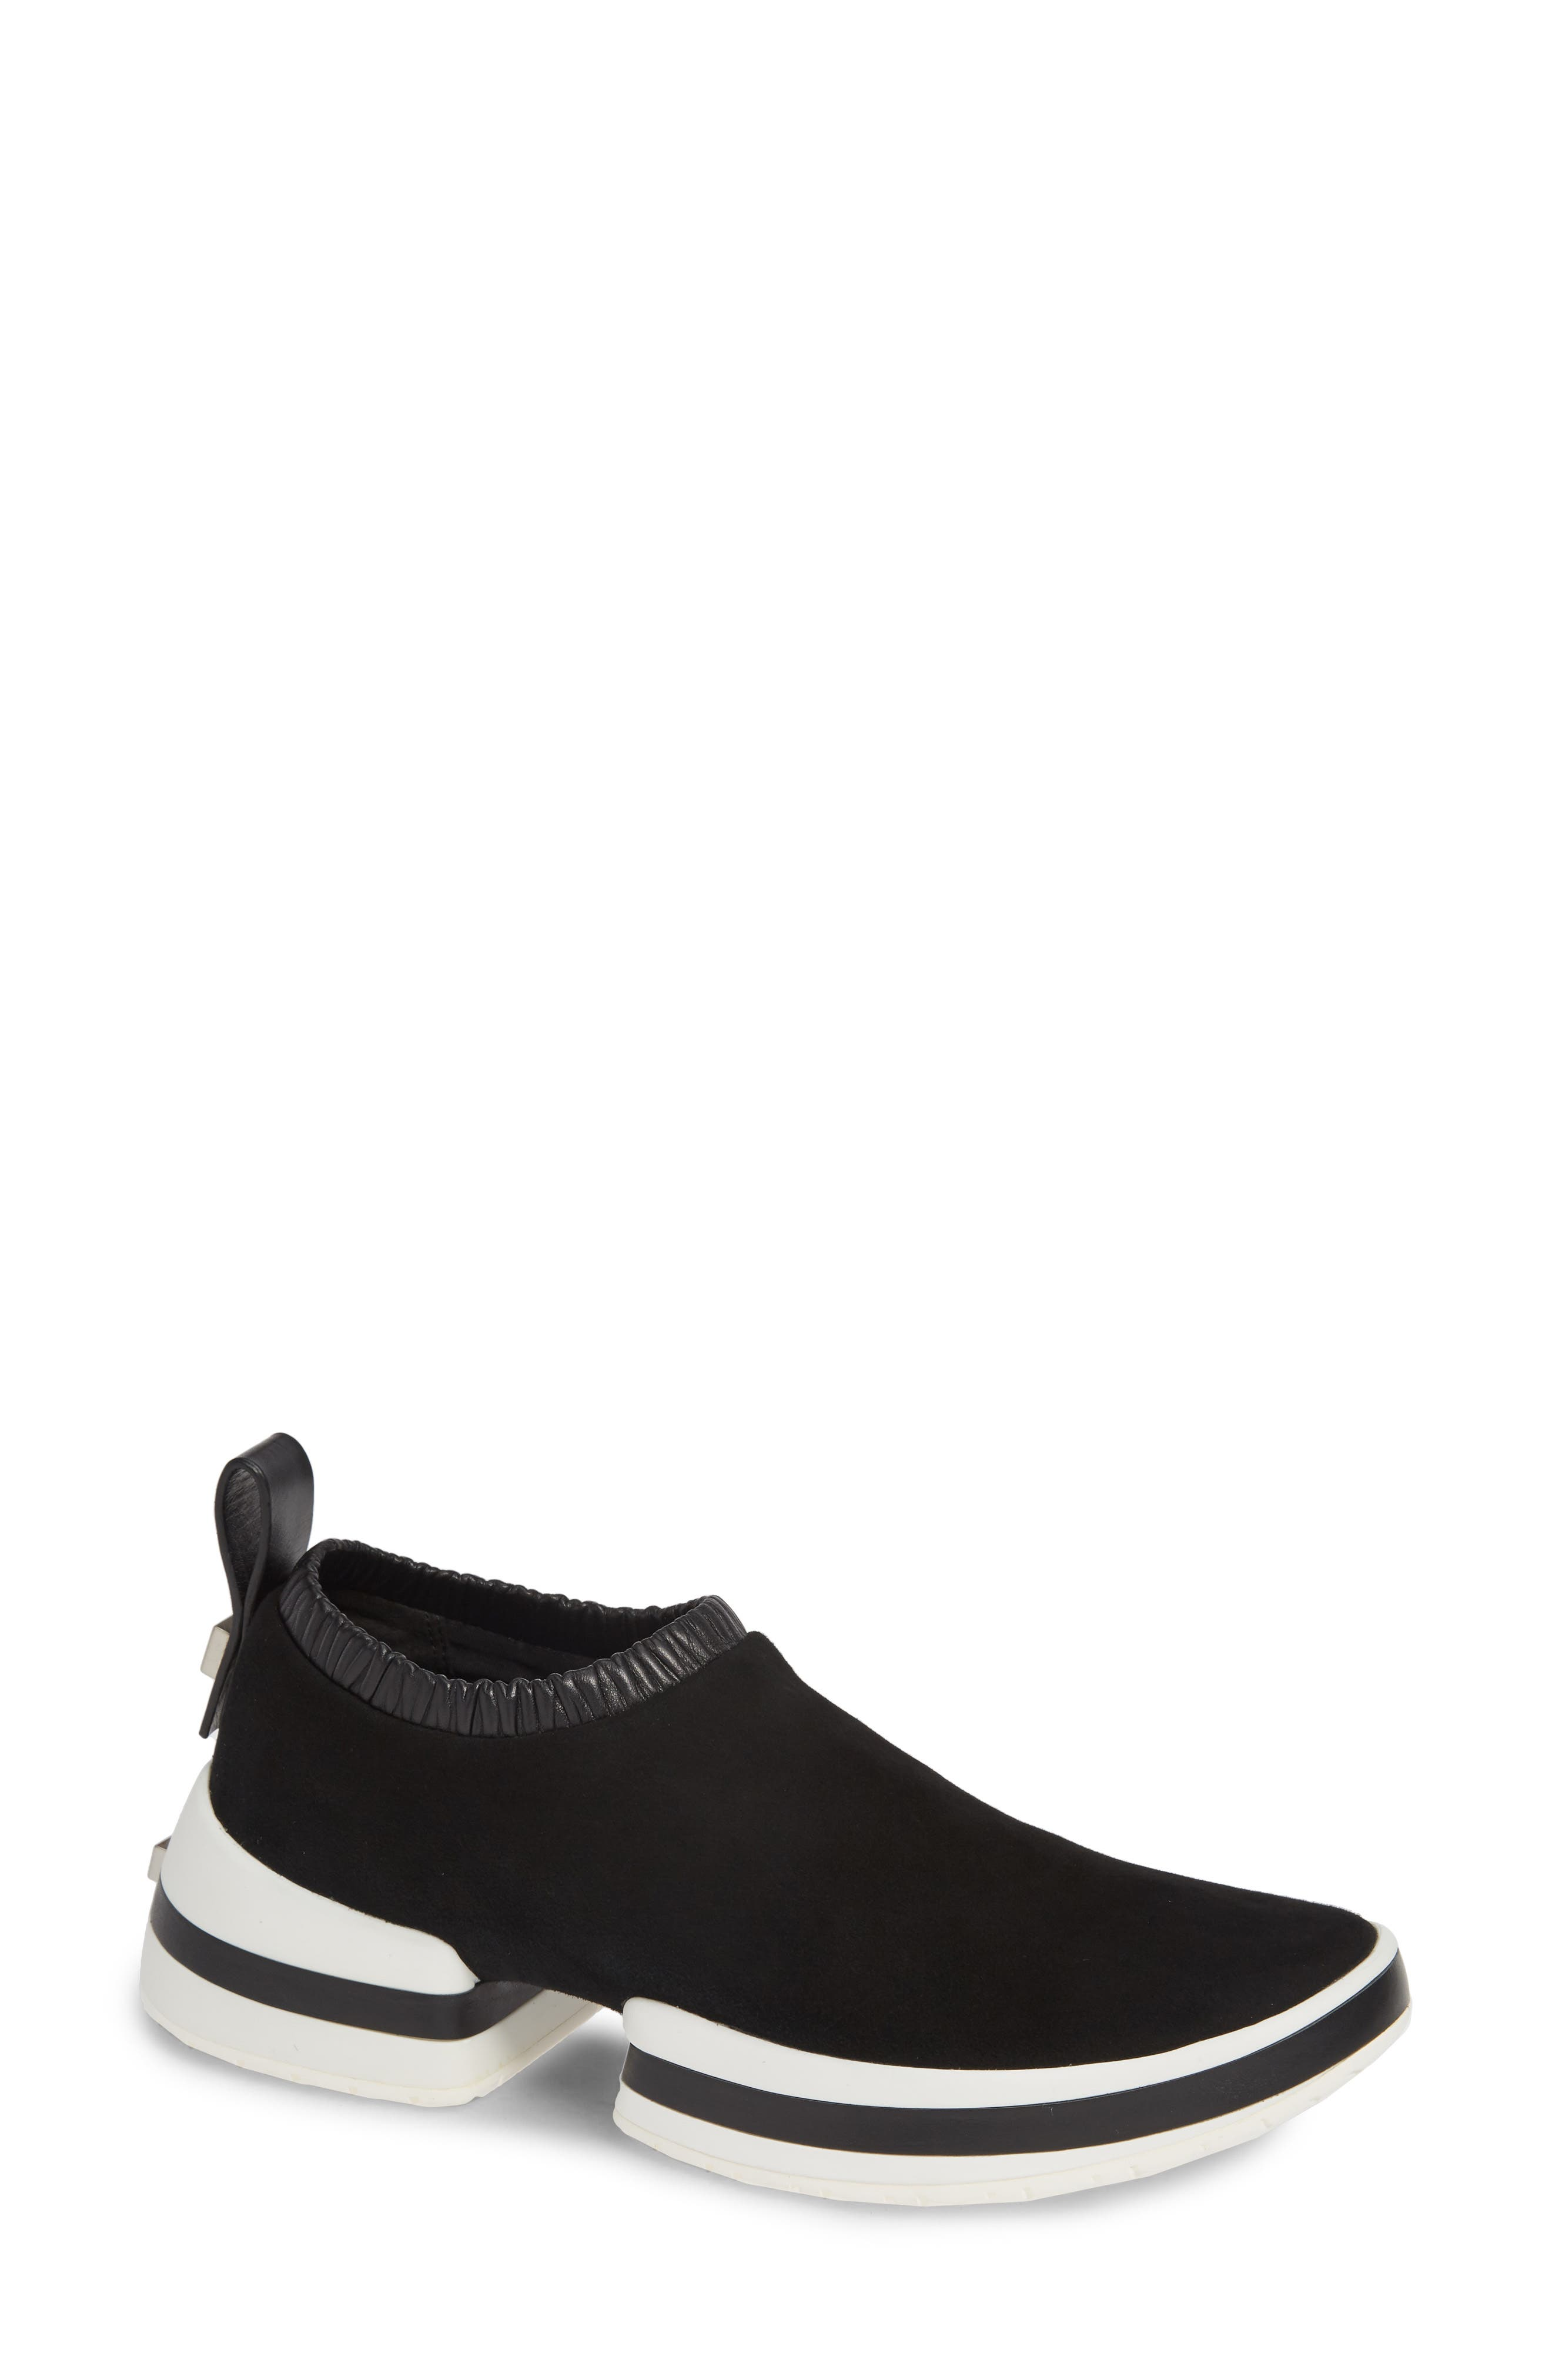 Sw-612 Suede/Leather Slip-On Sneakers in Black Suede